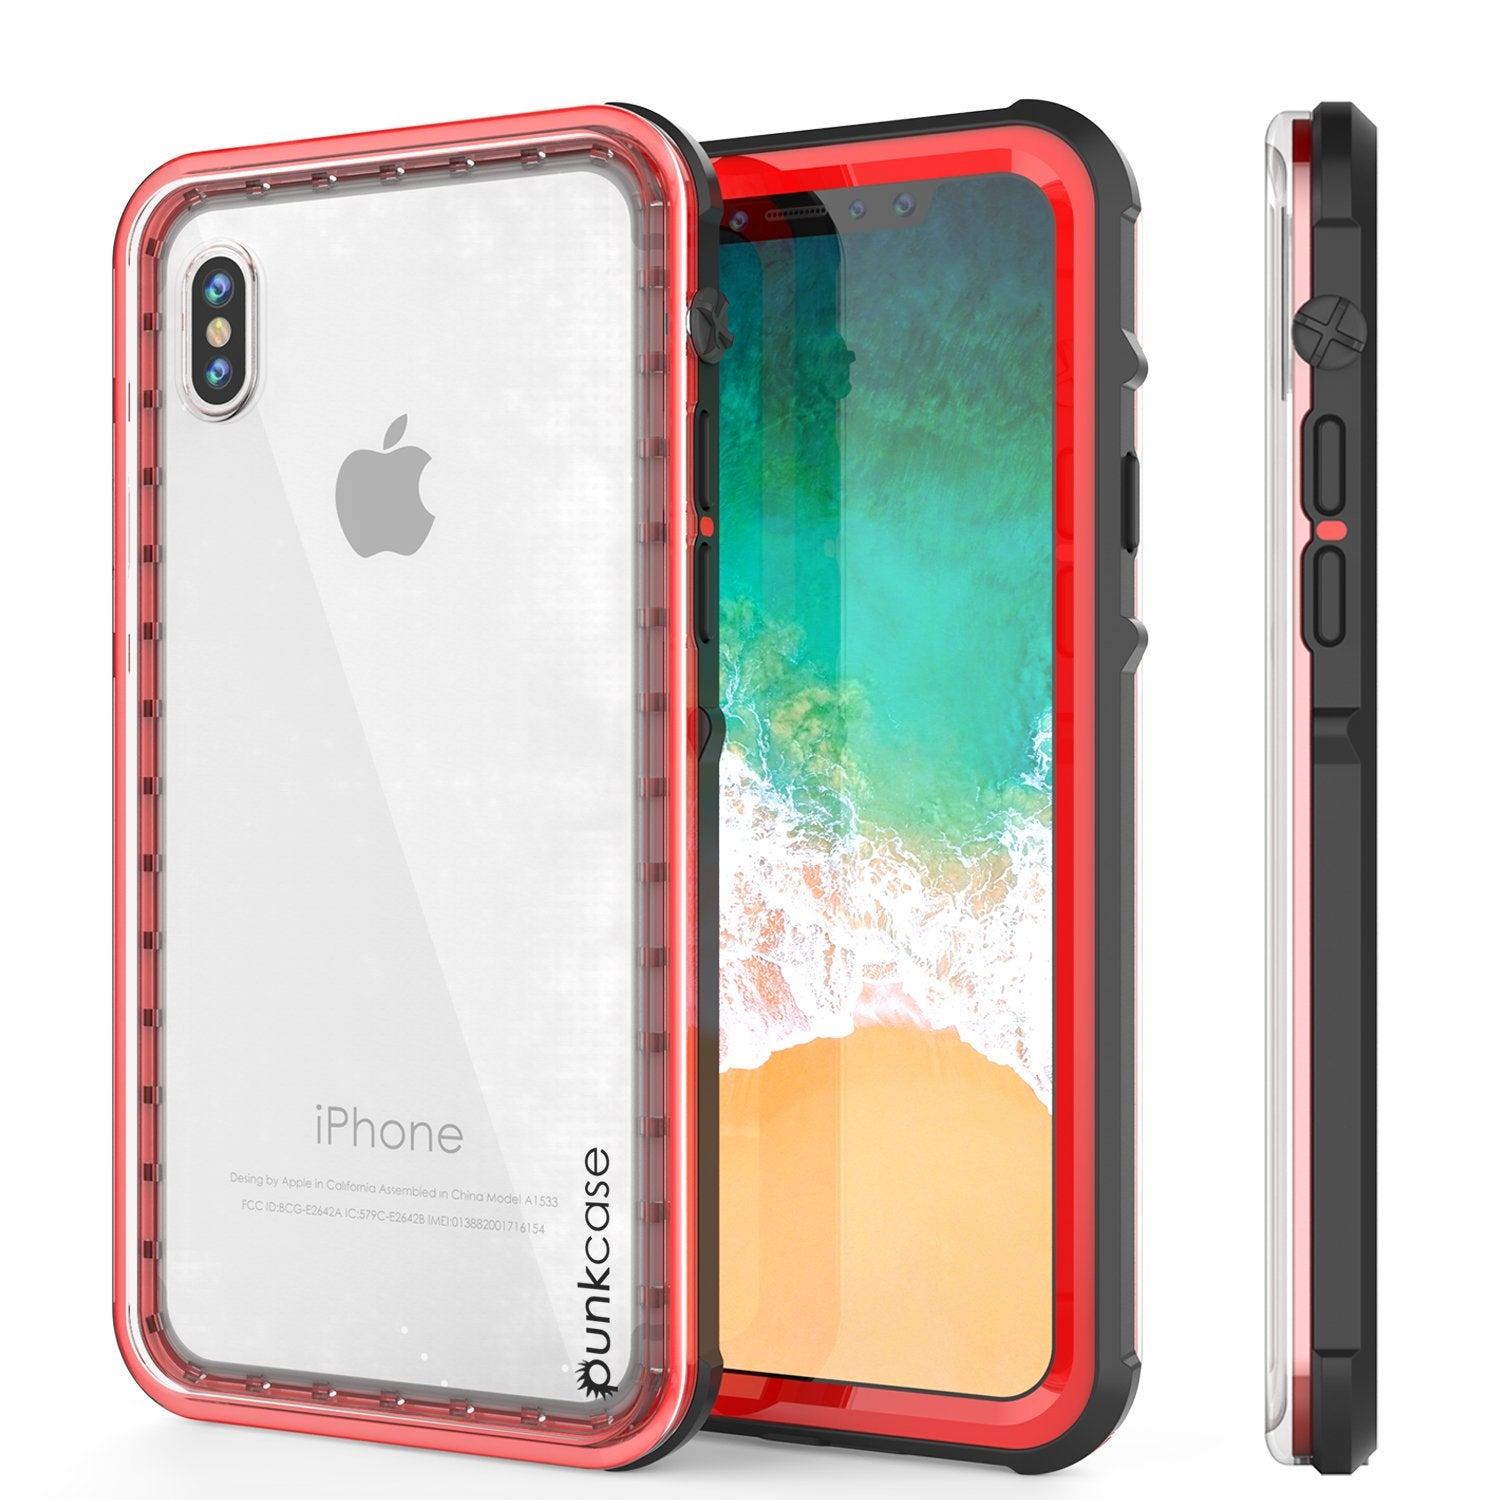 iPhone XS Max Case, PUNKCase [CRYSTAL SERIES] Protective IP68 Certified Cover [Red]